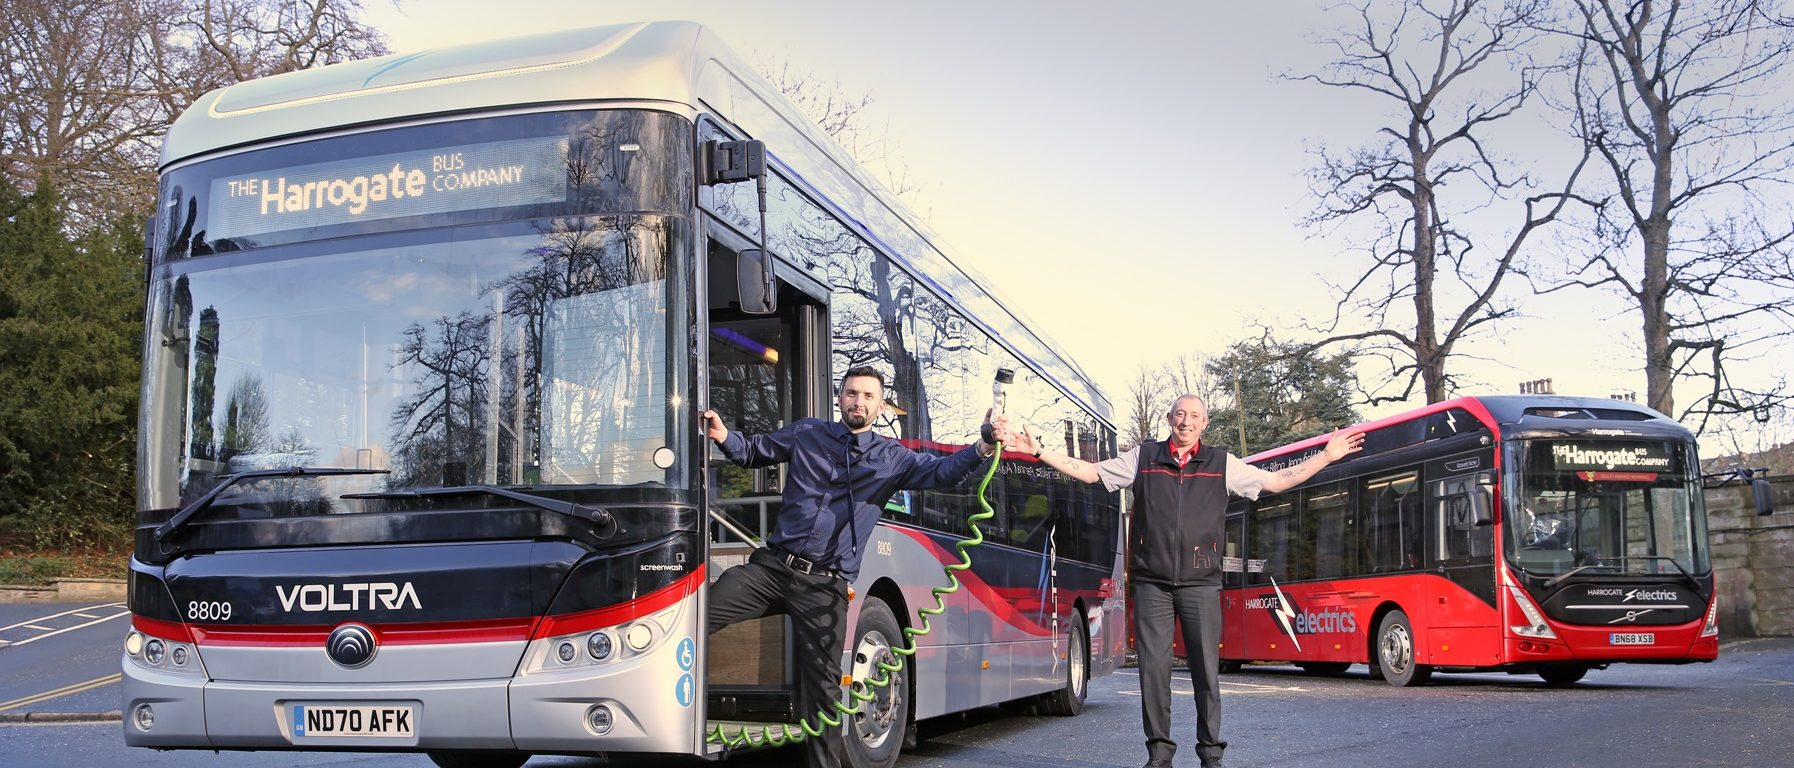 hgt-electric-bus-trial-phase-2